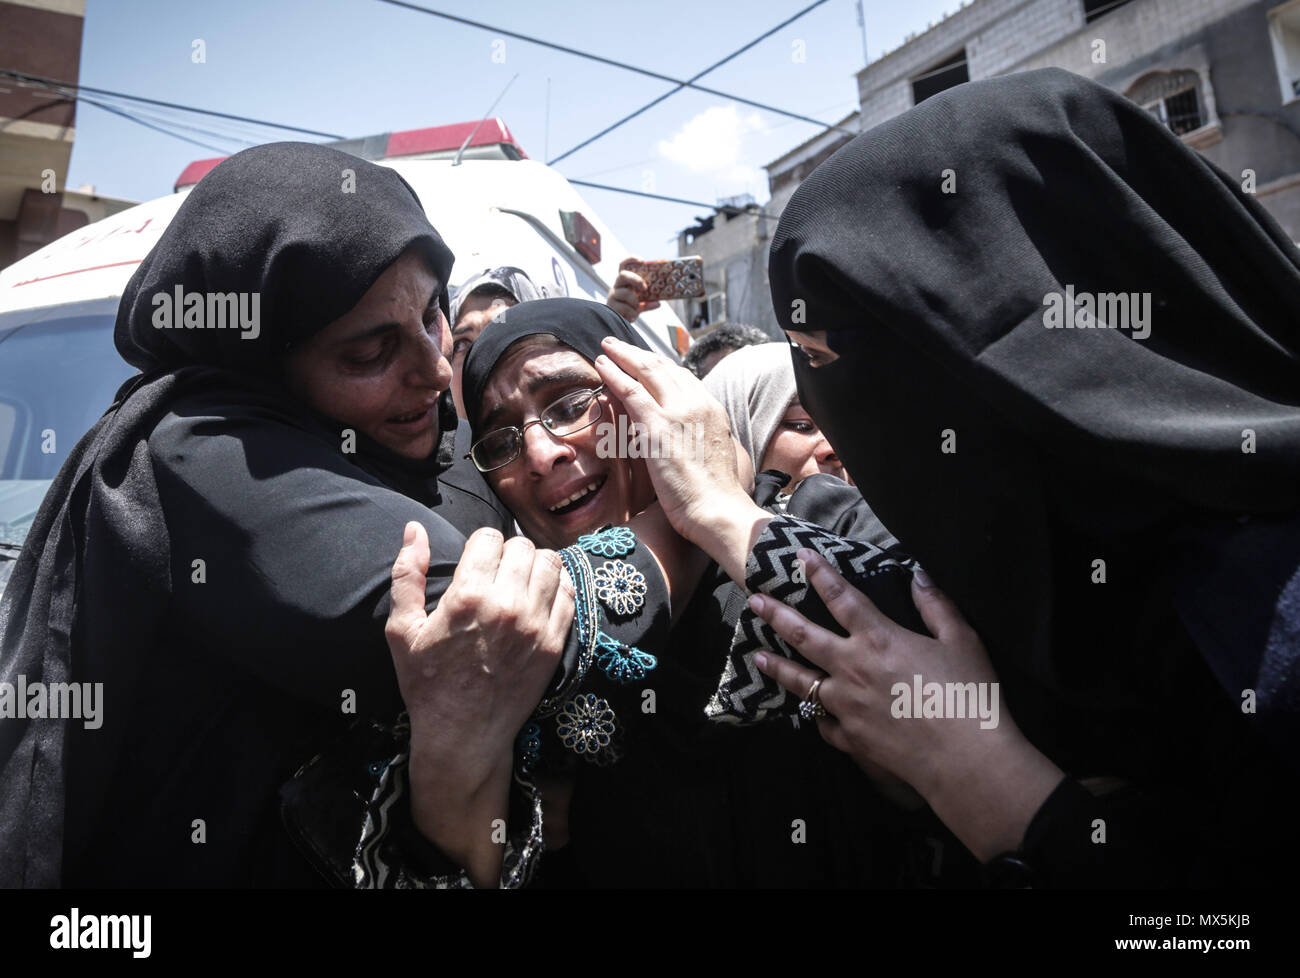 Gaza. 02nd June, 2018. The mother of 21 years old Razan al-Najjar mourns during the funeral of Palestinian nurse Razan Al-Najar, who according to health officials and a witness was killed by Israeli forces as she tried to help a wounded protester at the Gaza border, in Khan Younis in the southern Gaza Strip June 2, 2018. Credit: Nidal Alwaheidi/Pacific Press/Alamy Live News - Stock Image